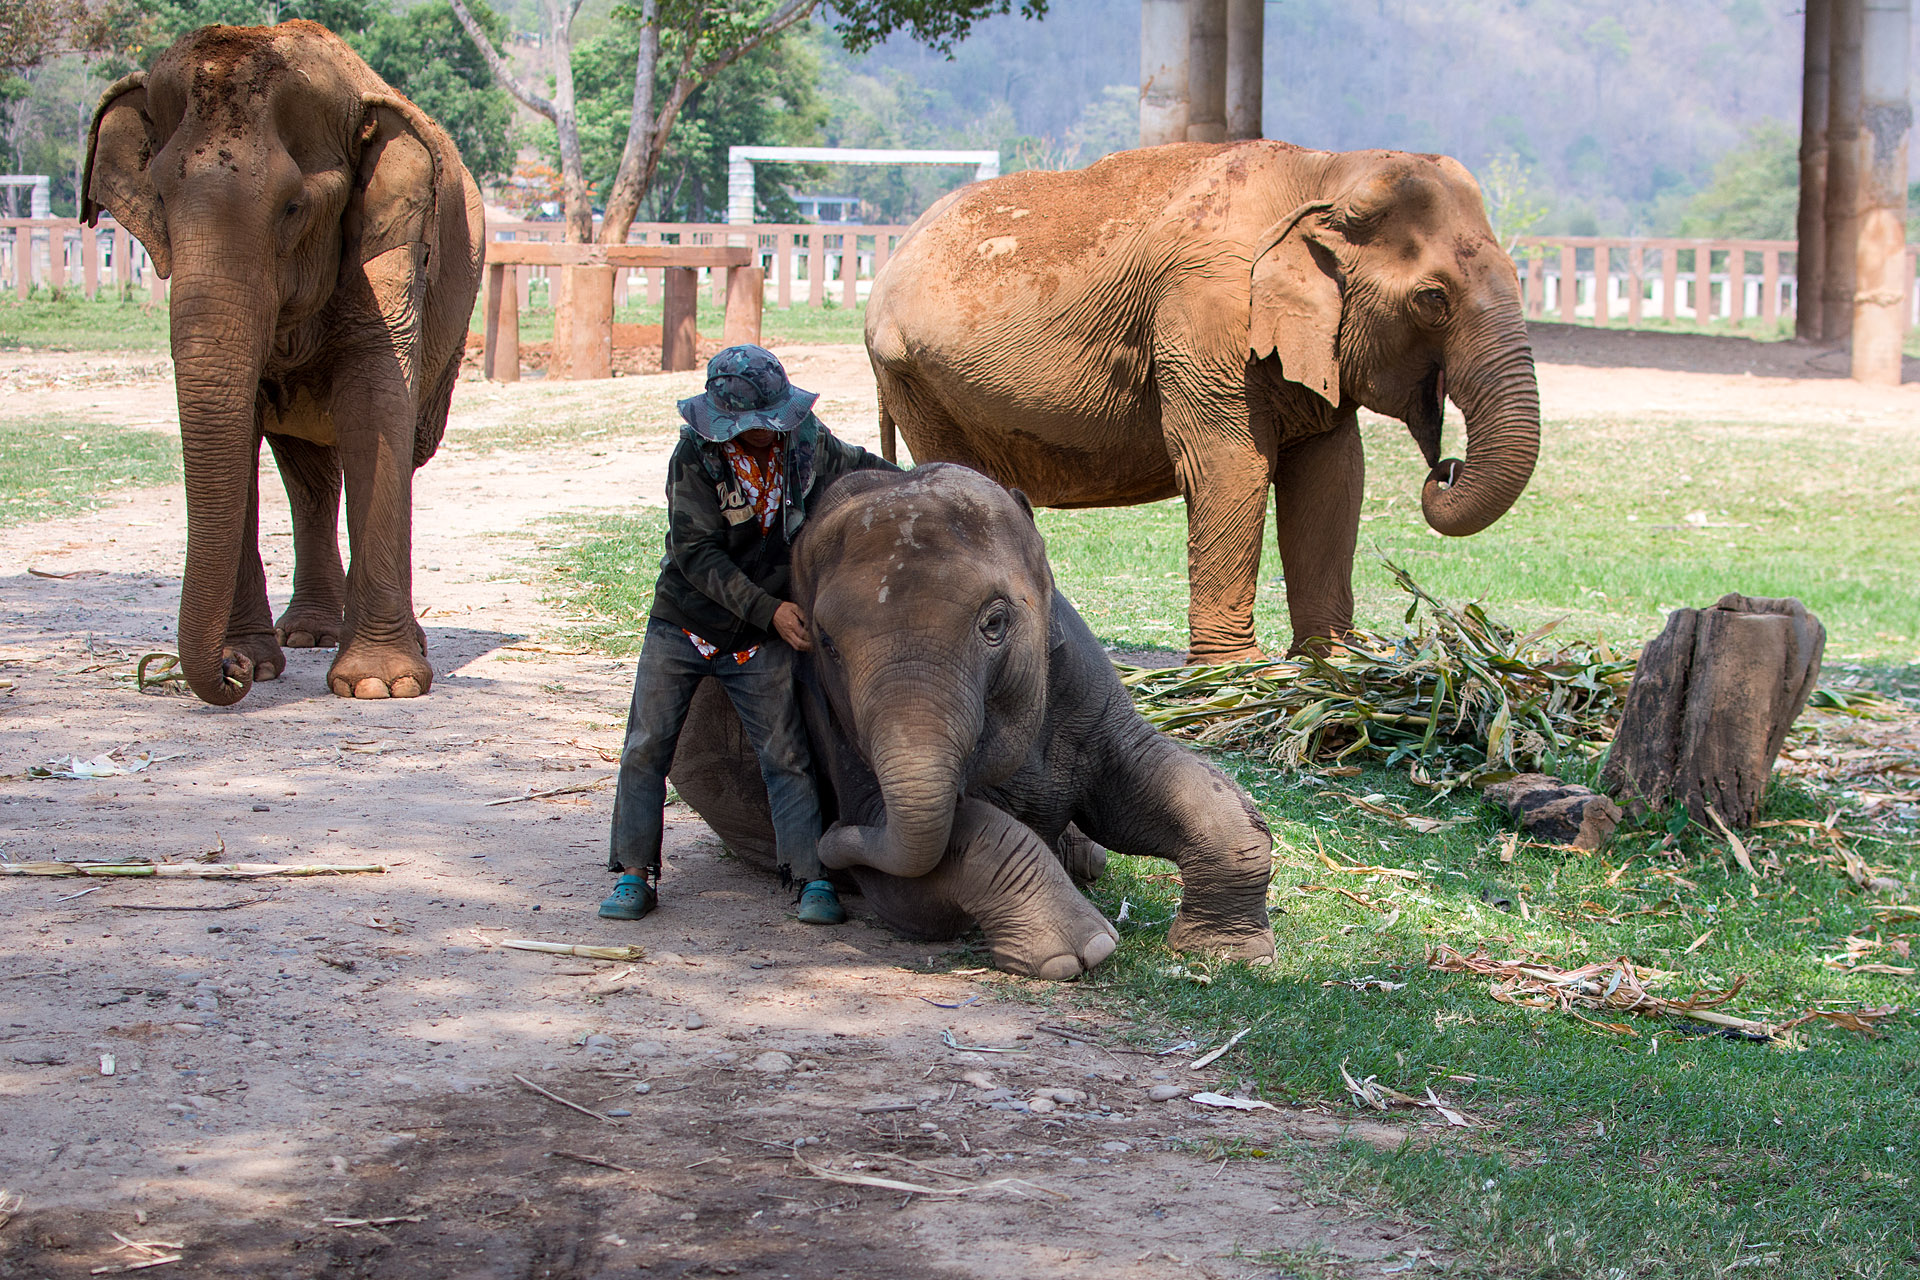 Yindee getting Thai massage from his mahout